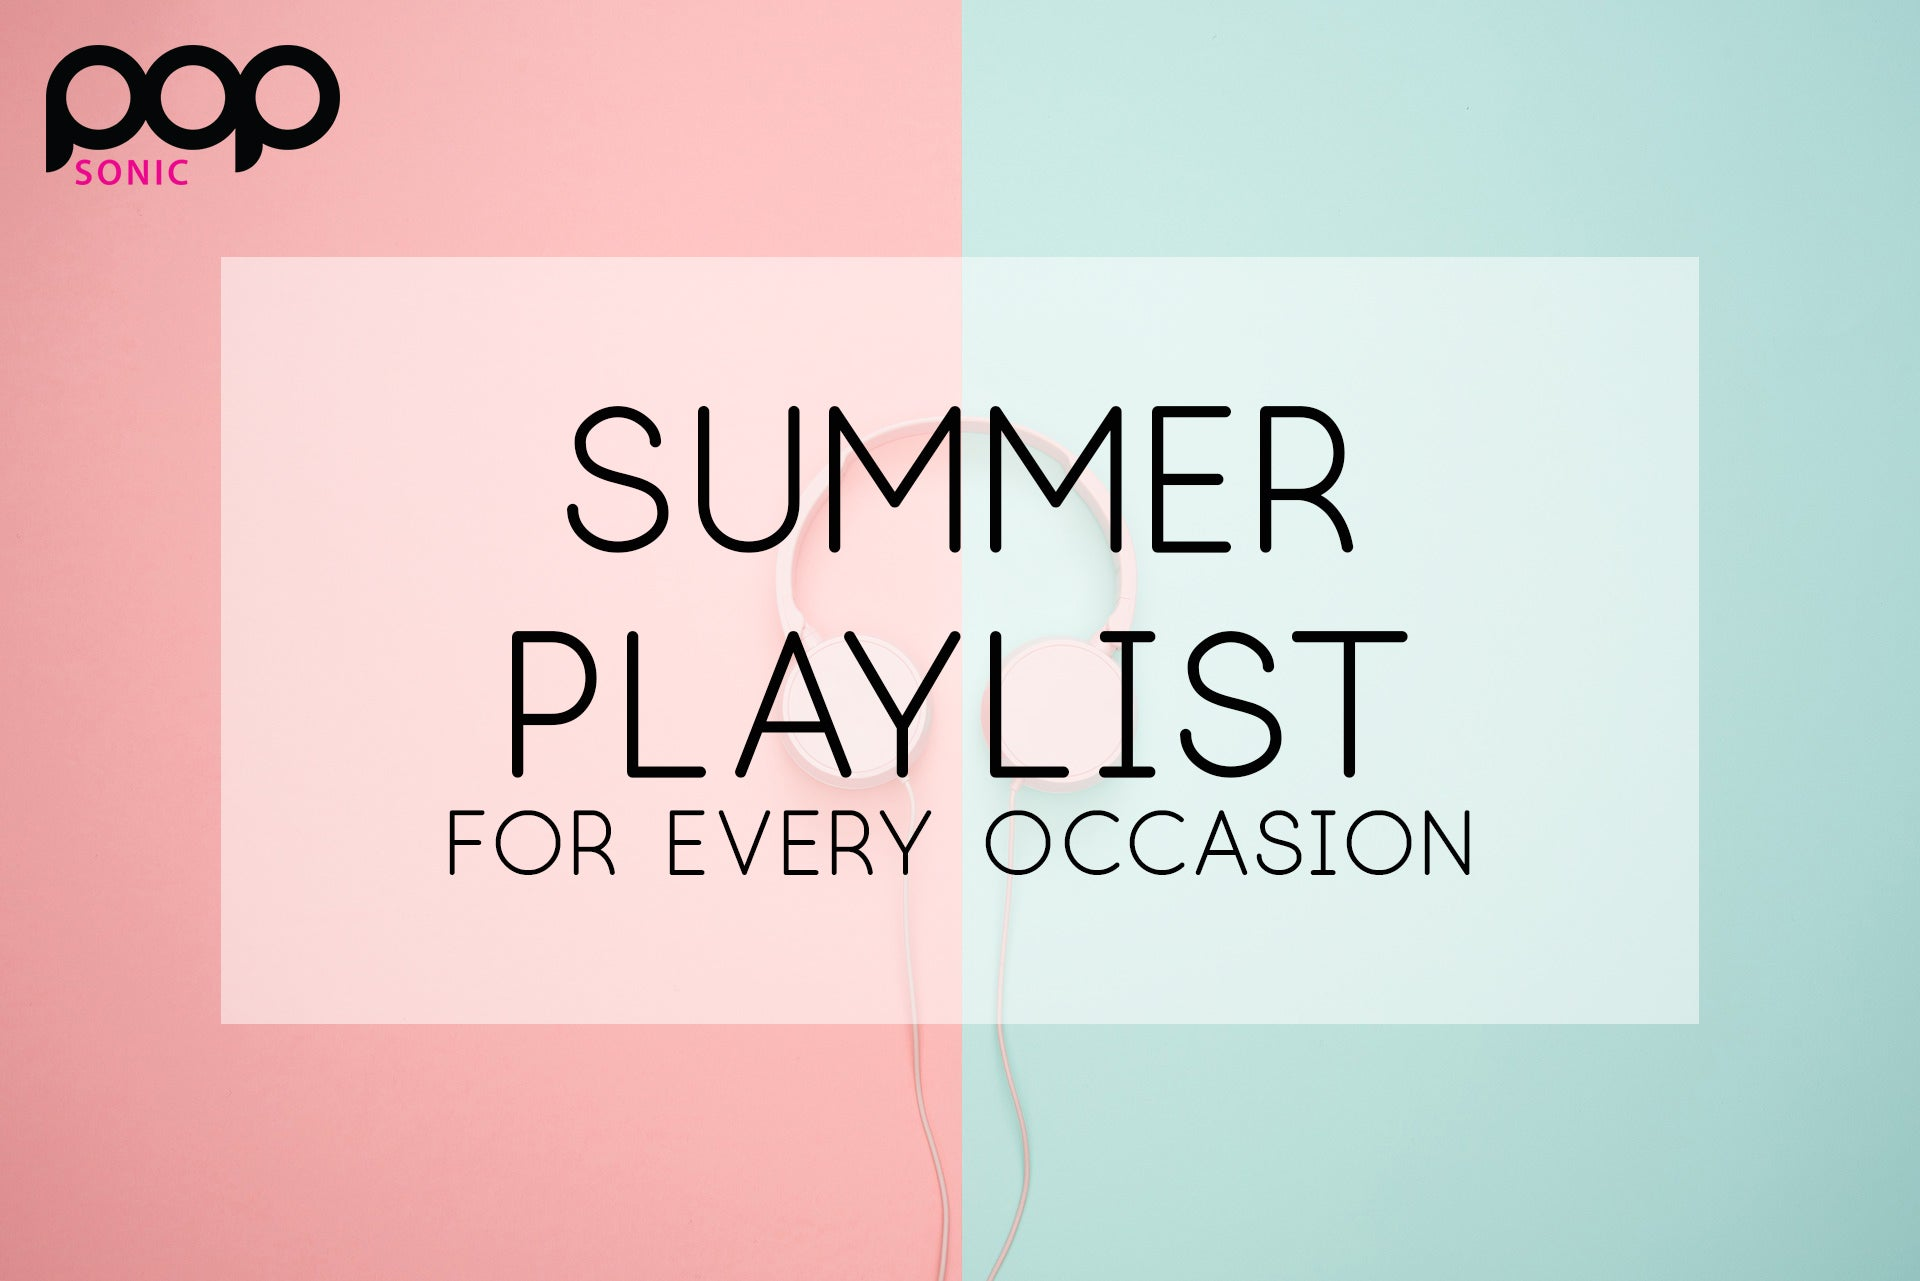 Summer Playlist for Every Occasion – Pop Sonic LLC